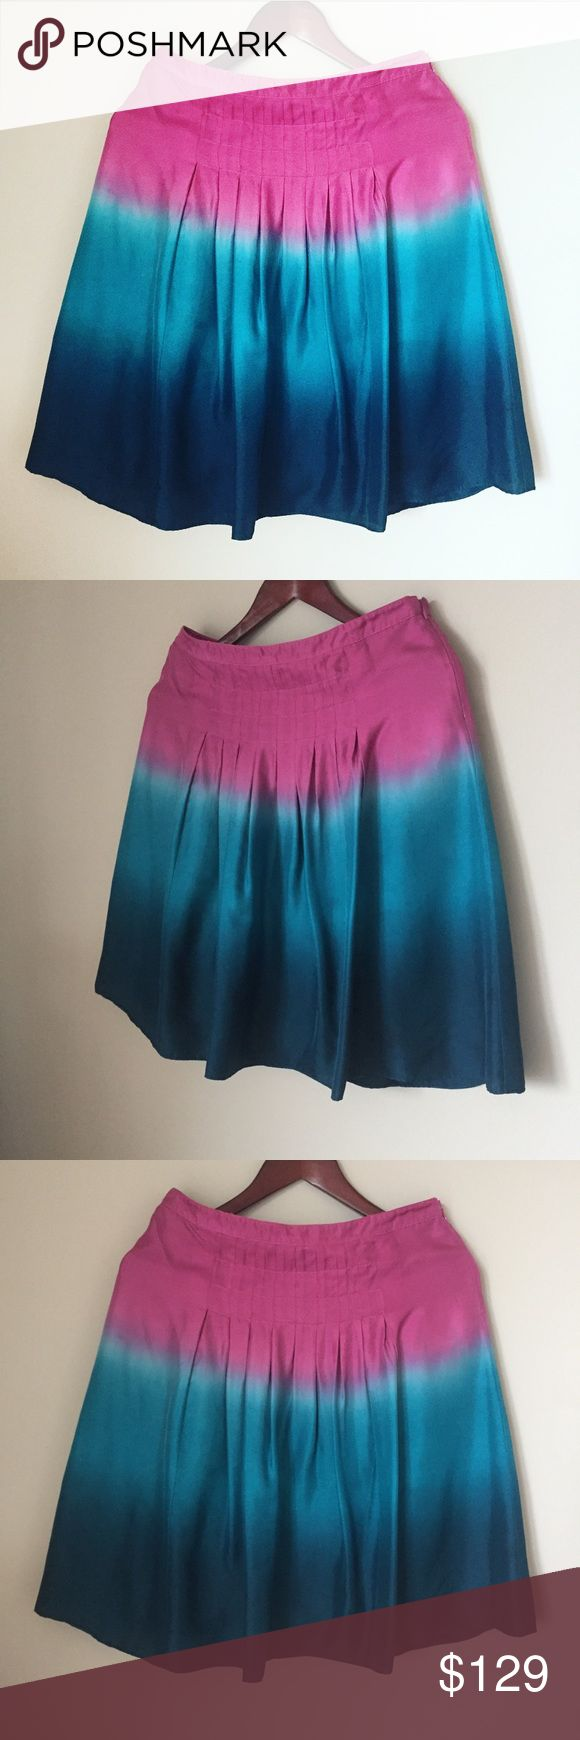 NINE WEST ombré pure silk skirt pleated midi Like new condition. Amazing saturated colors. Pire fine silk. Chanel Dior Zara Fendi Kenzo Prada Hermes Michael Kors Valentino Lacoste Louis Vuitton Balenciaga Alexander Wang Kate Spade Hugo Boss Burberry Prada Gucci Runway Fashion show.  Free people. Premuim Signature collection. Bundle with other items to get 15% off. Nine West Skirts Midi